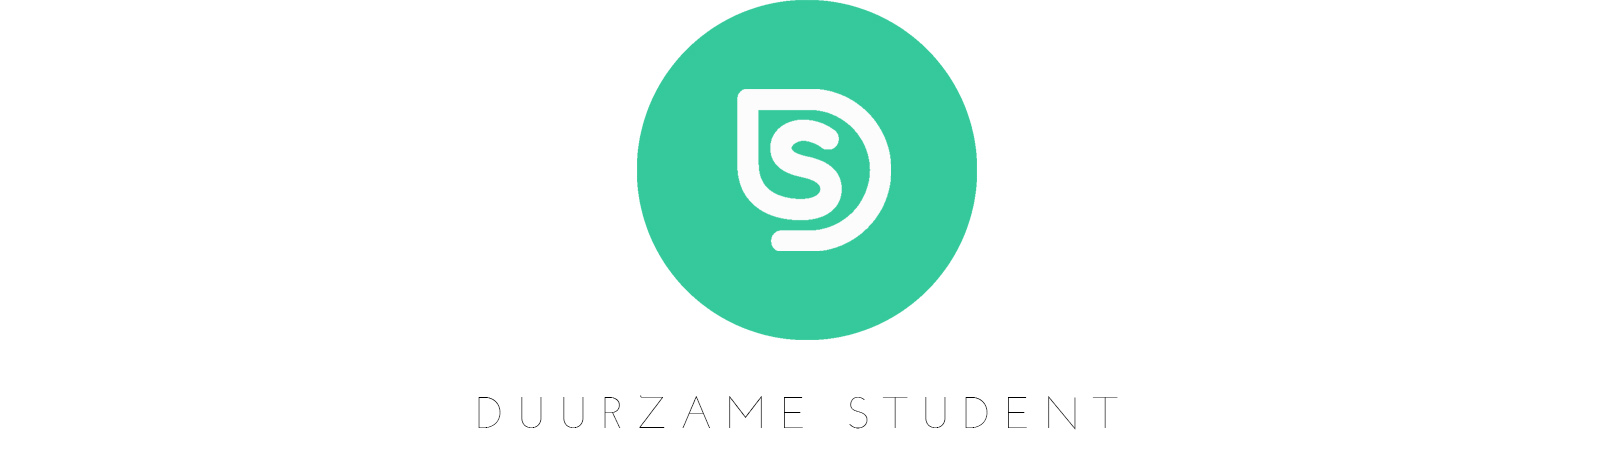 Duurzame Student